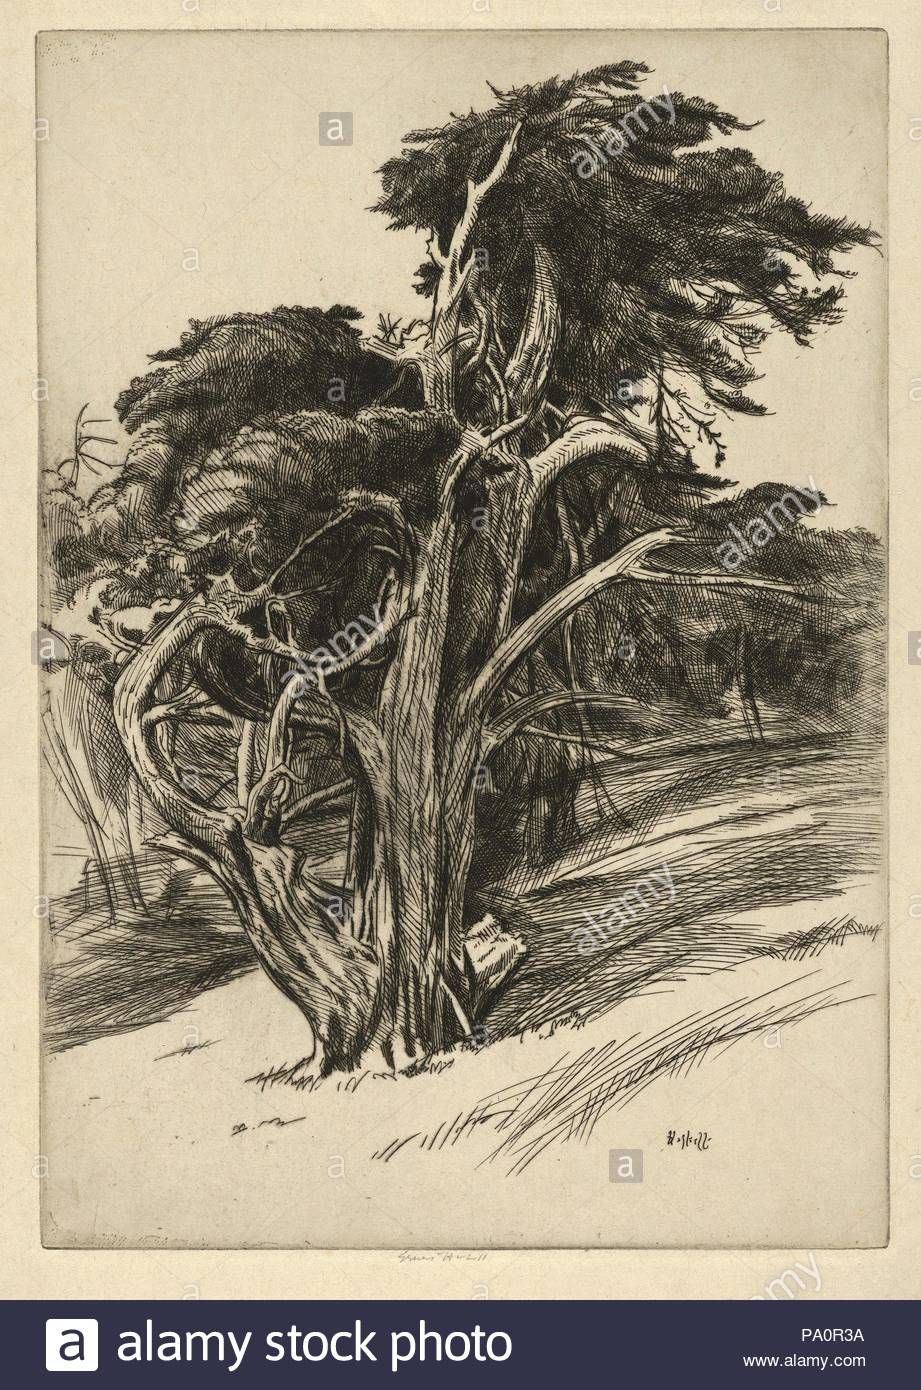 Drawings and Prints, Print, Plume of Balboa, Artist, Ernest Haskell, American, Woodstock, Connecticut 1876–1925 West Point, Maine, Haskell, Ernest, American, 1876, 1925, 1914–19. - Stock Image